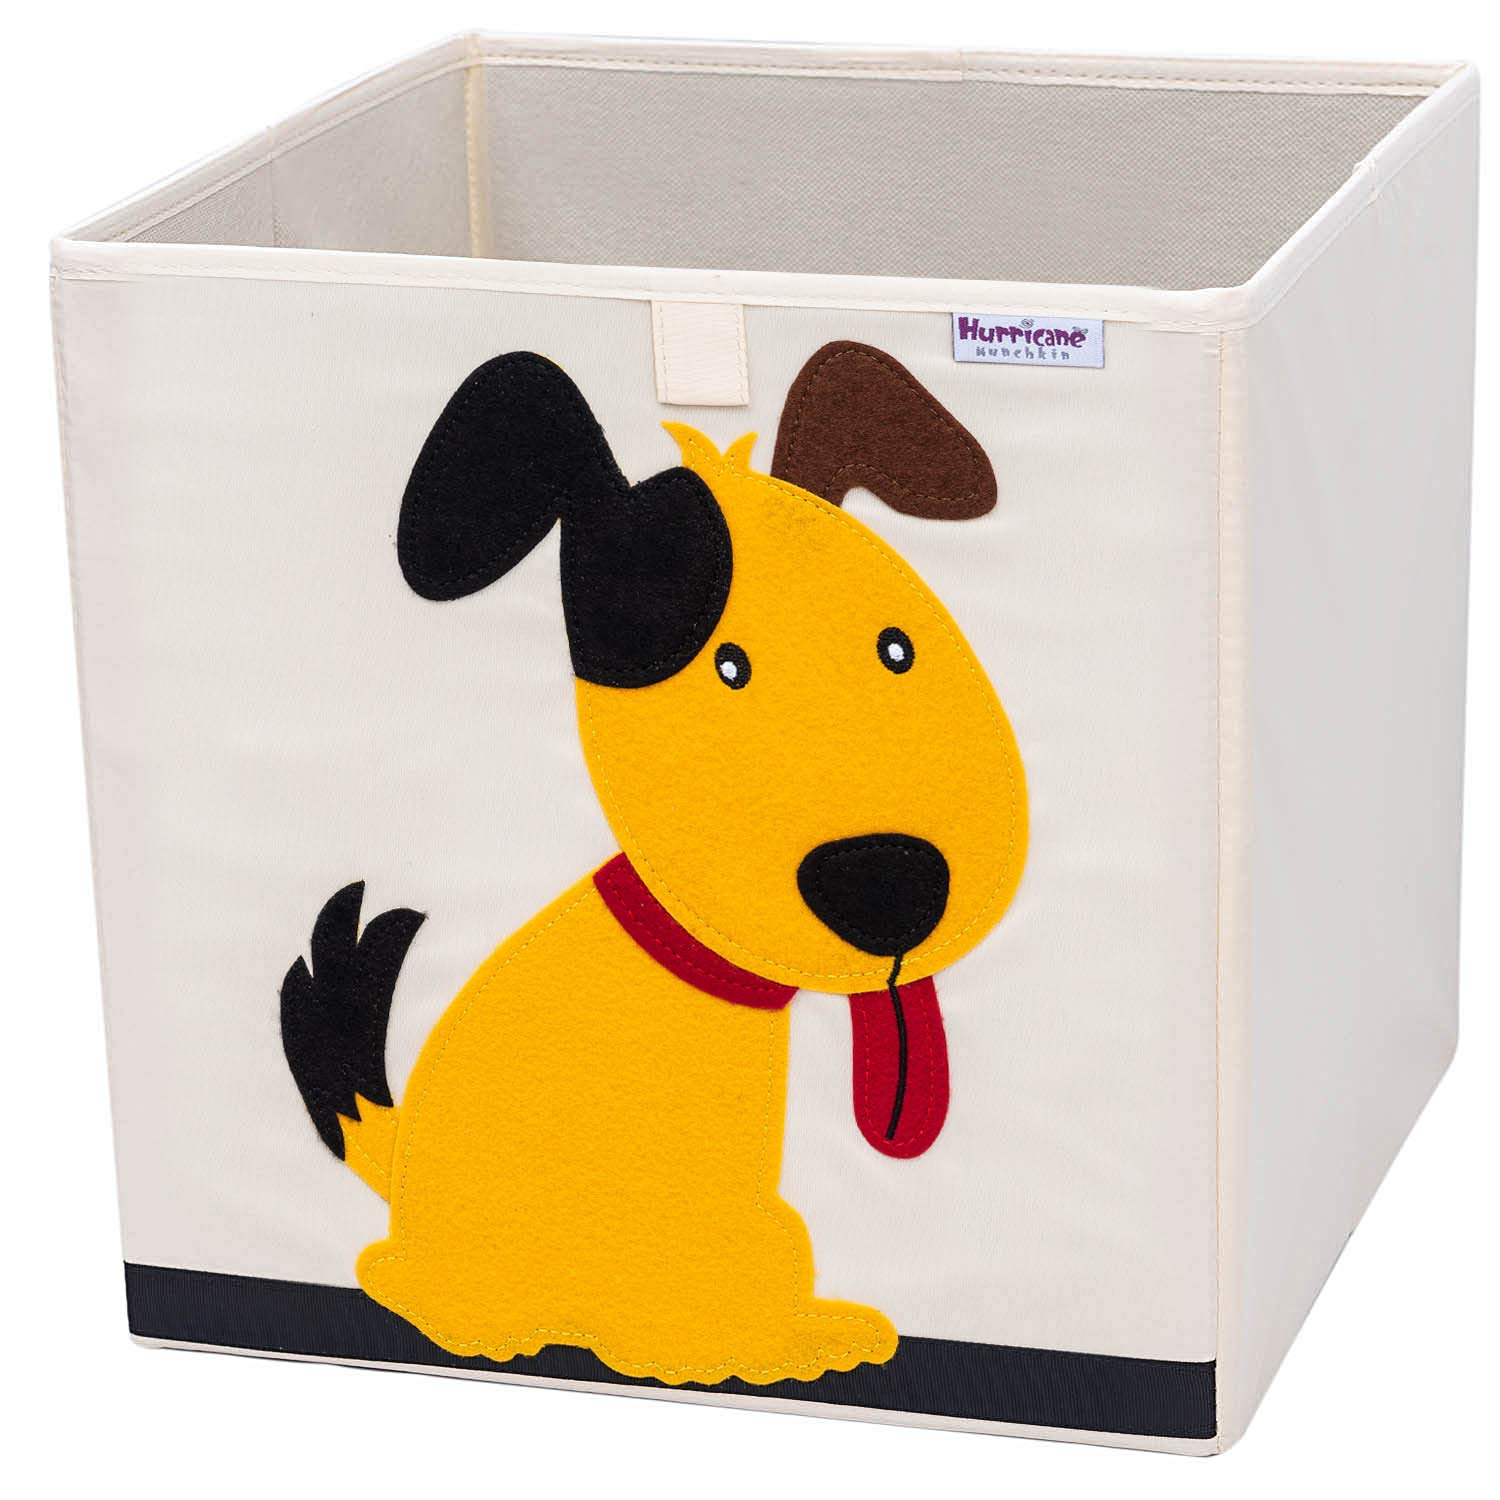 Hurricane Munchkin Collapsible Toy Storage Box   Cube Bin Organizer for Children Toys, Stuffed Animals, Books & Clothes (13'' x 13'' x 13'')   Great for Nursery, Kids Bedroom & Playroom - Dog